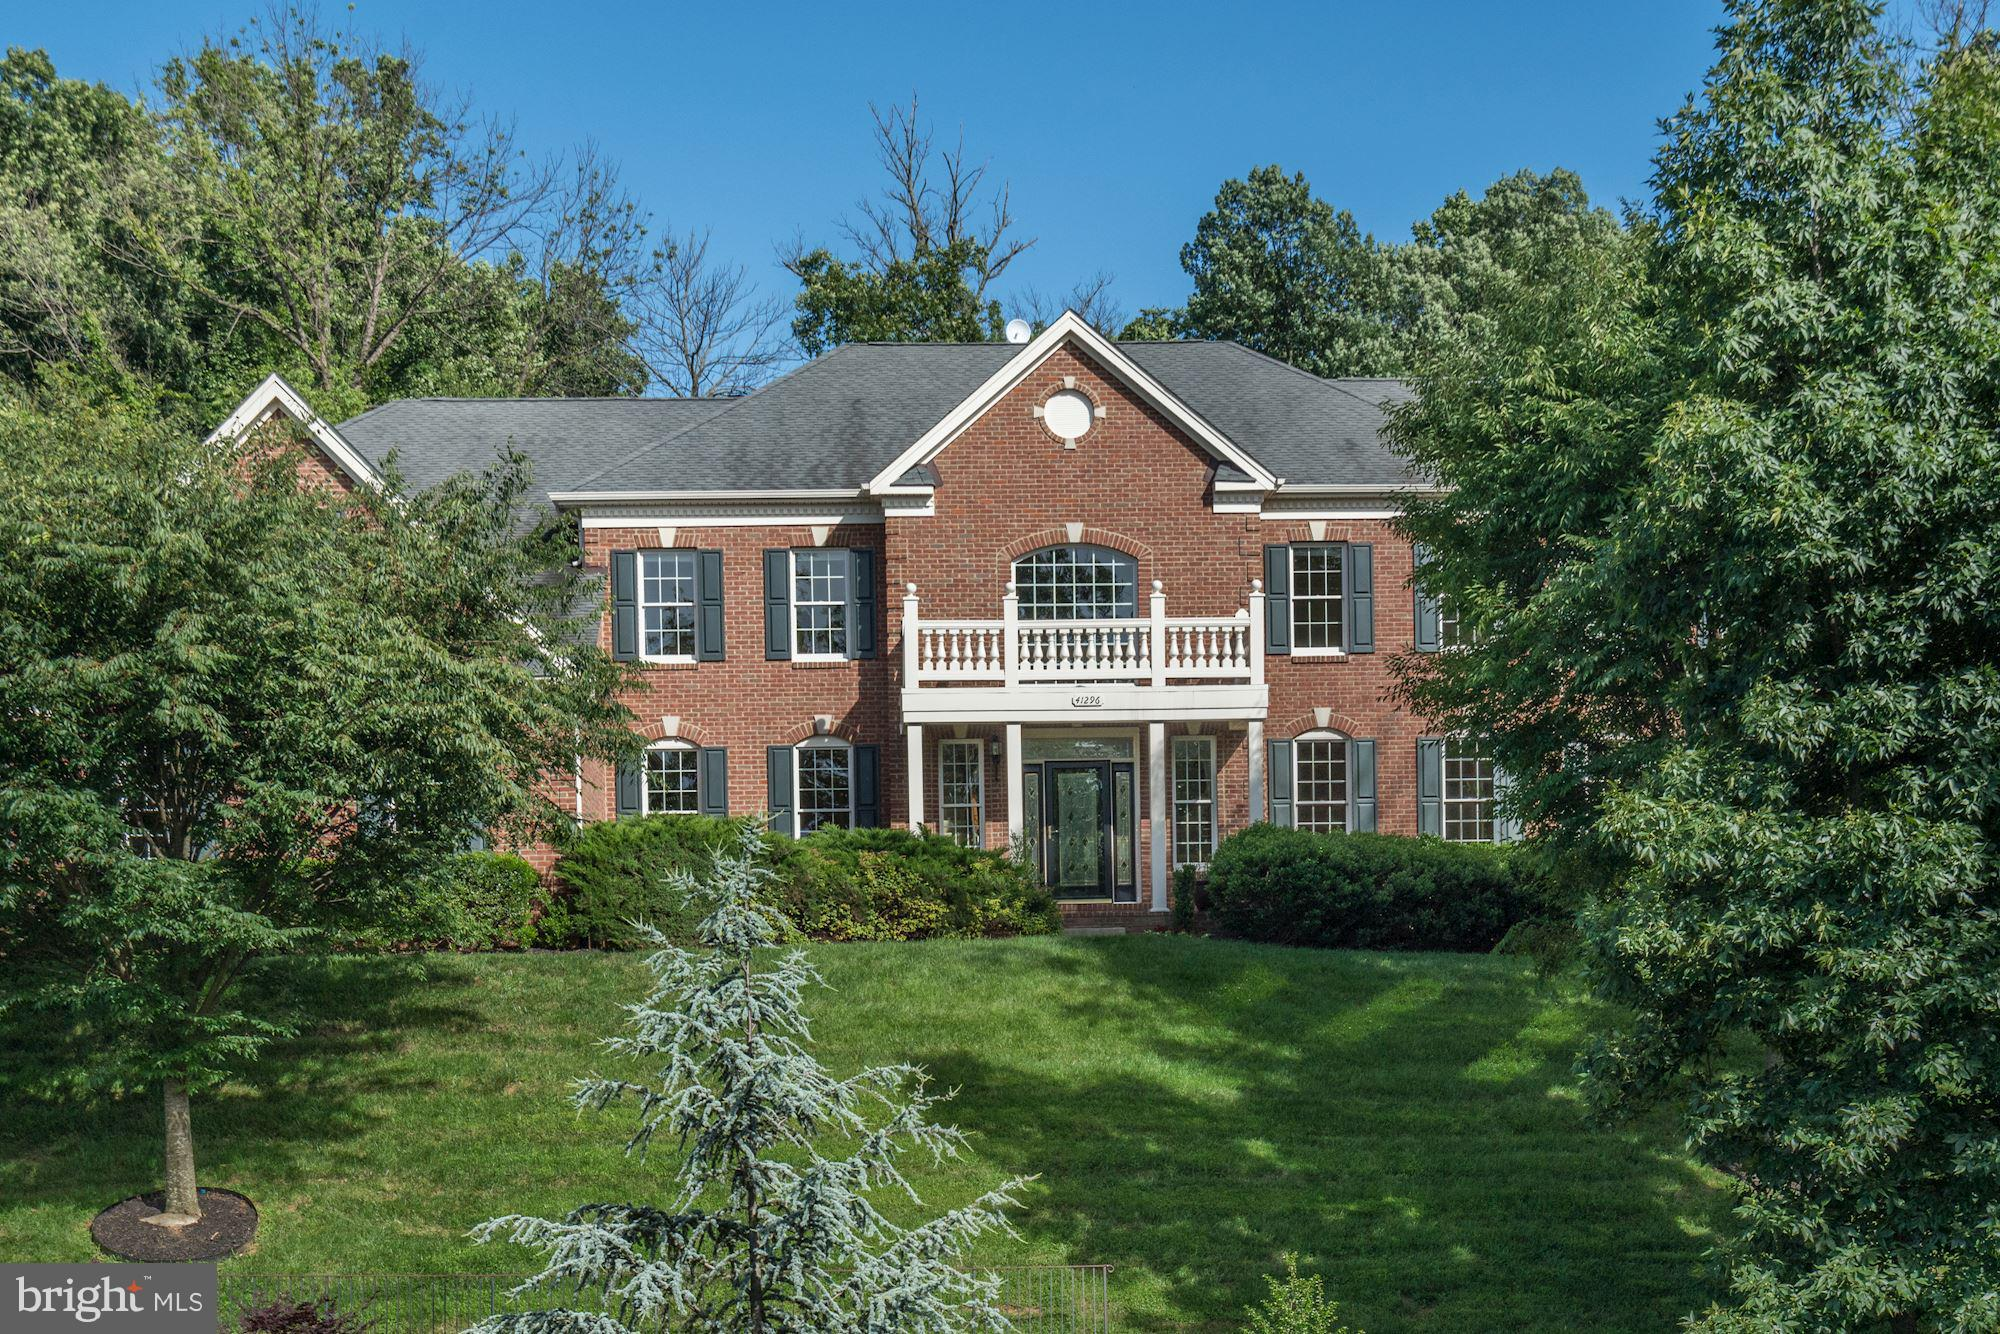 Amazing spacious Toll Brothers home in Waterford with private hilltop views from front. Large deck &